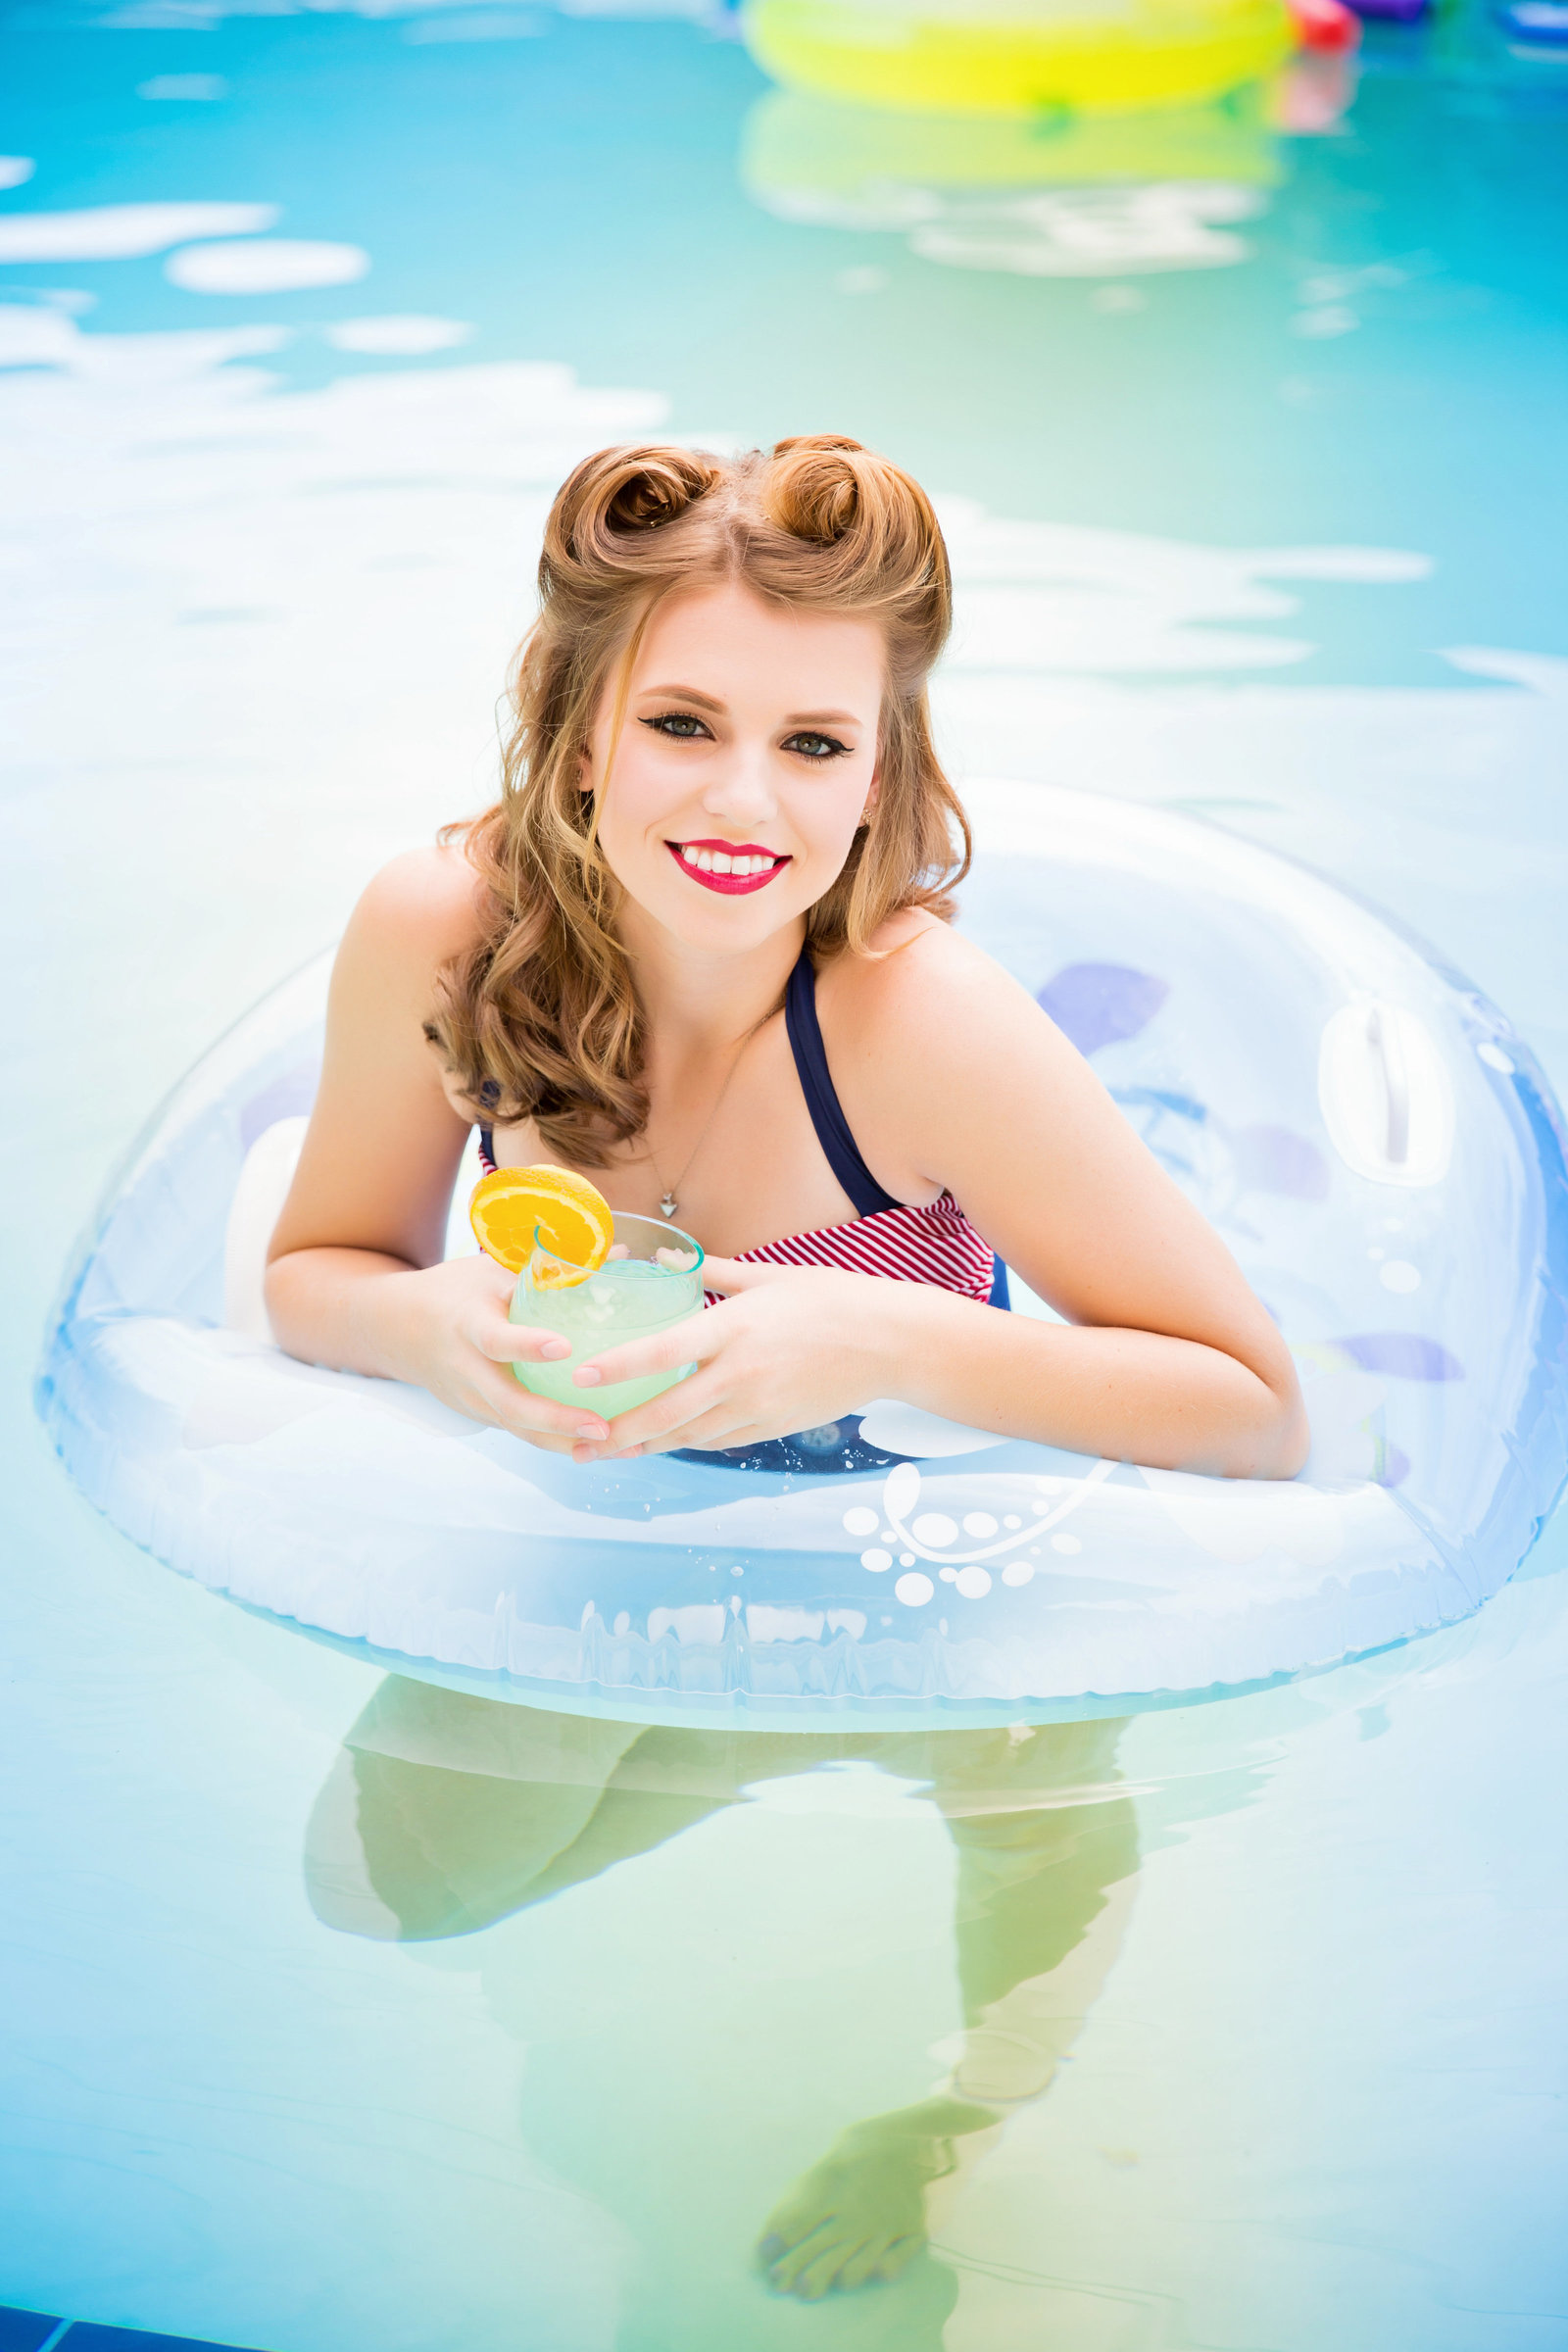 Wendy-Nolte-Photography-best-senior-photos-arizona-1